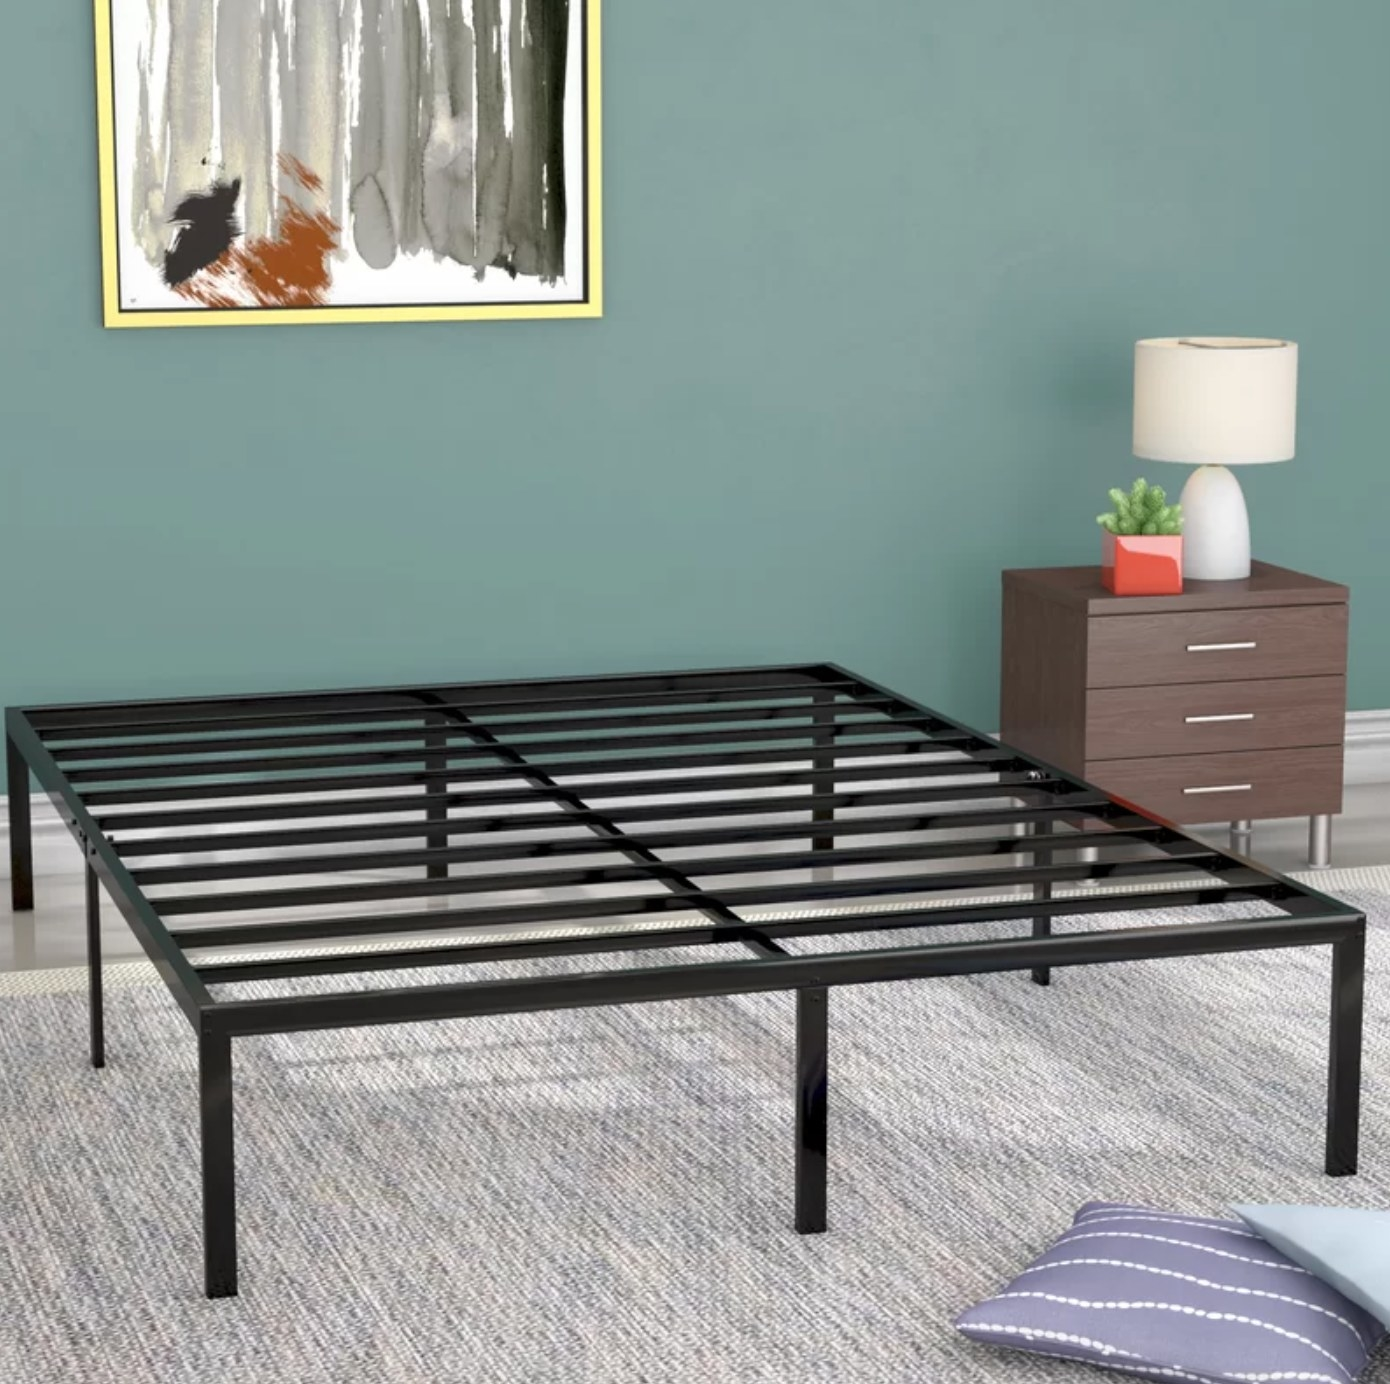 The heavy-duty bed frame in black metal